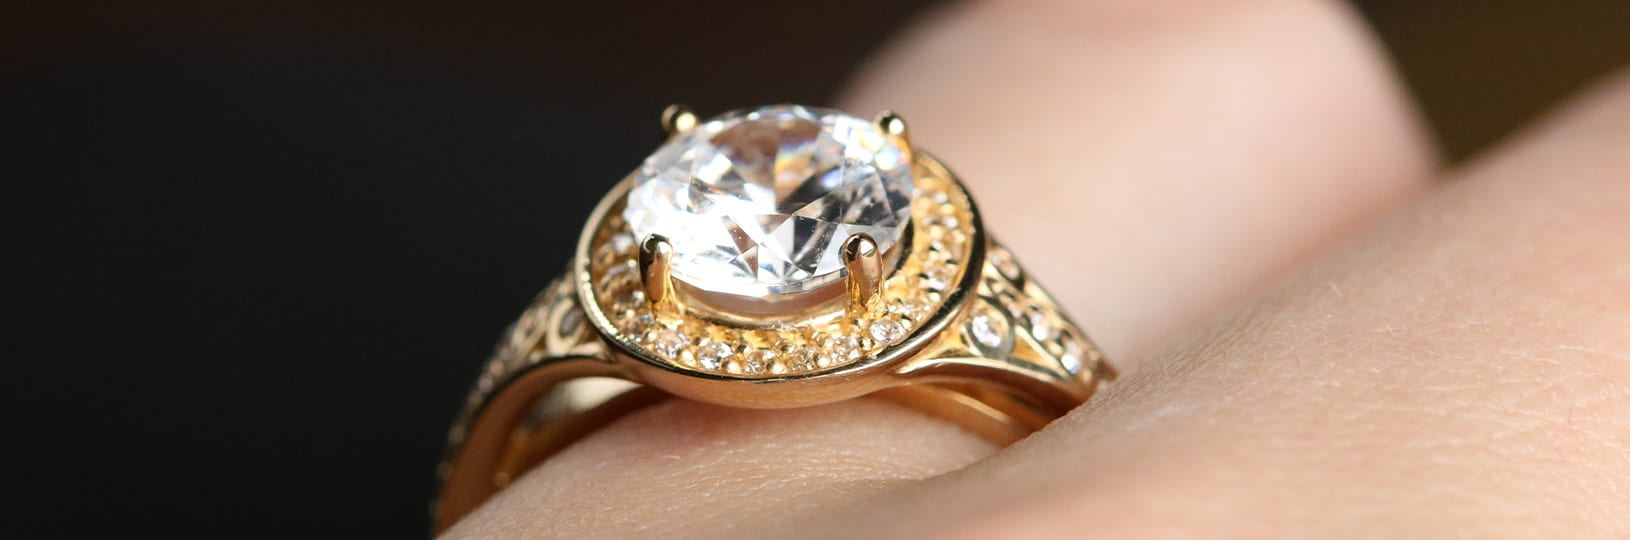 Gold is the official gemstone for the 50th anniversary